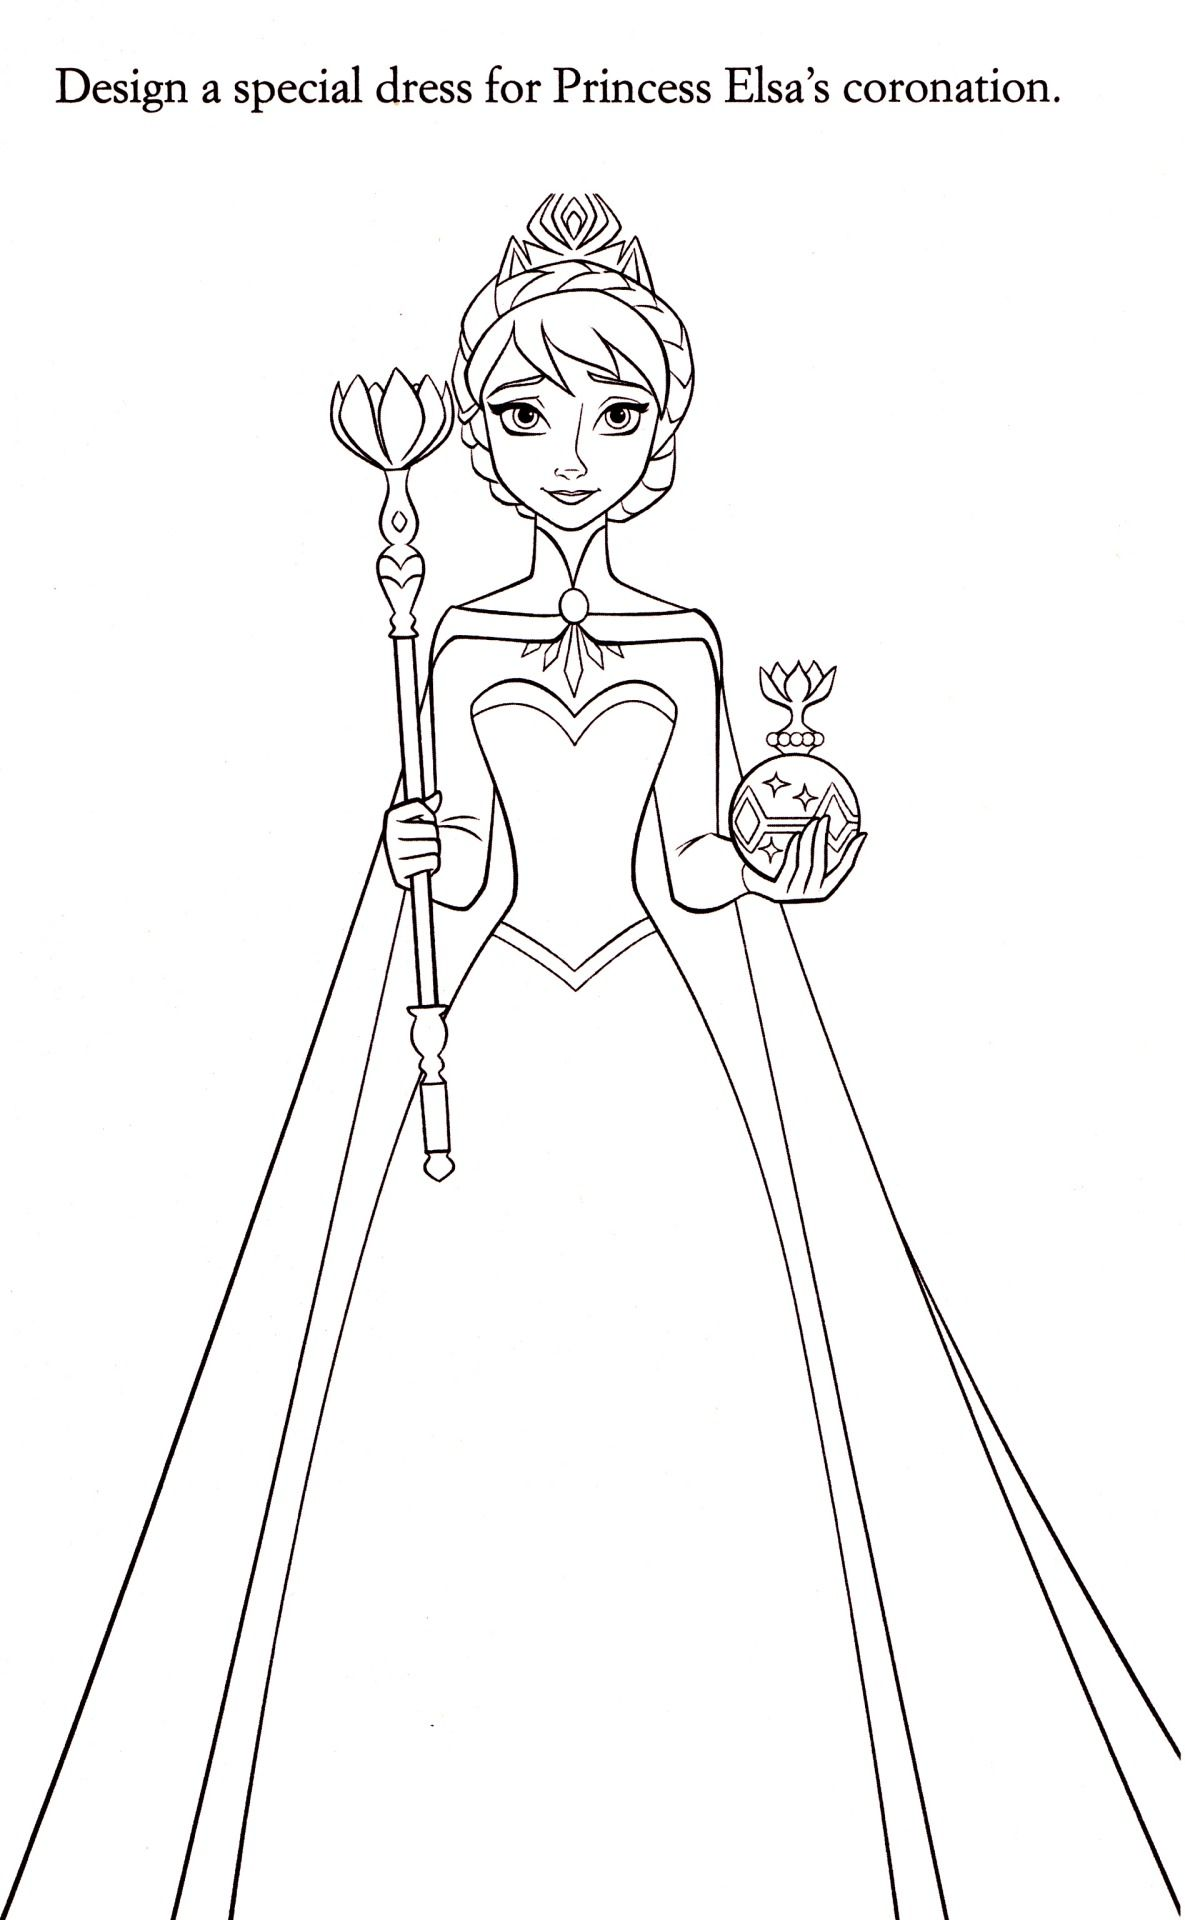 frozen cartoon characters coloring pages - photo#39